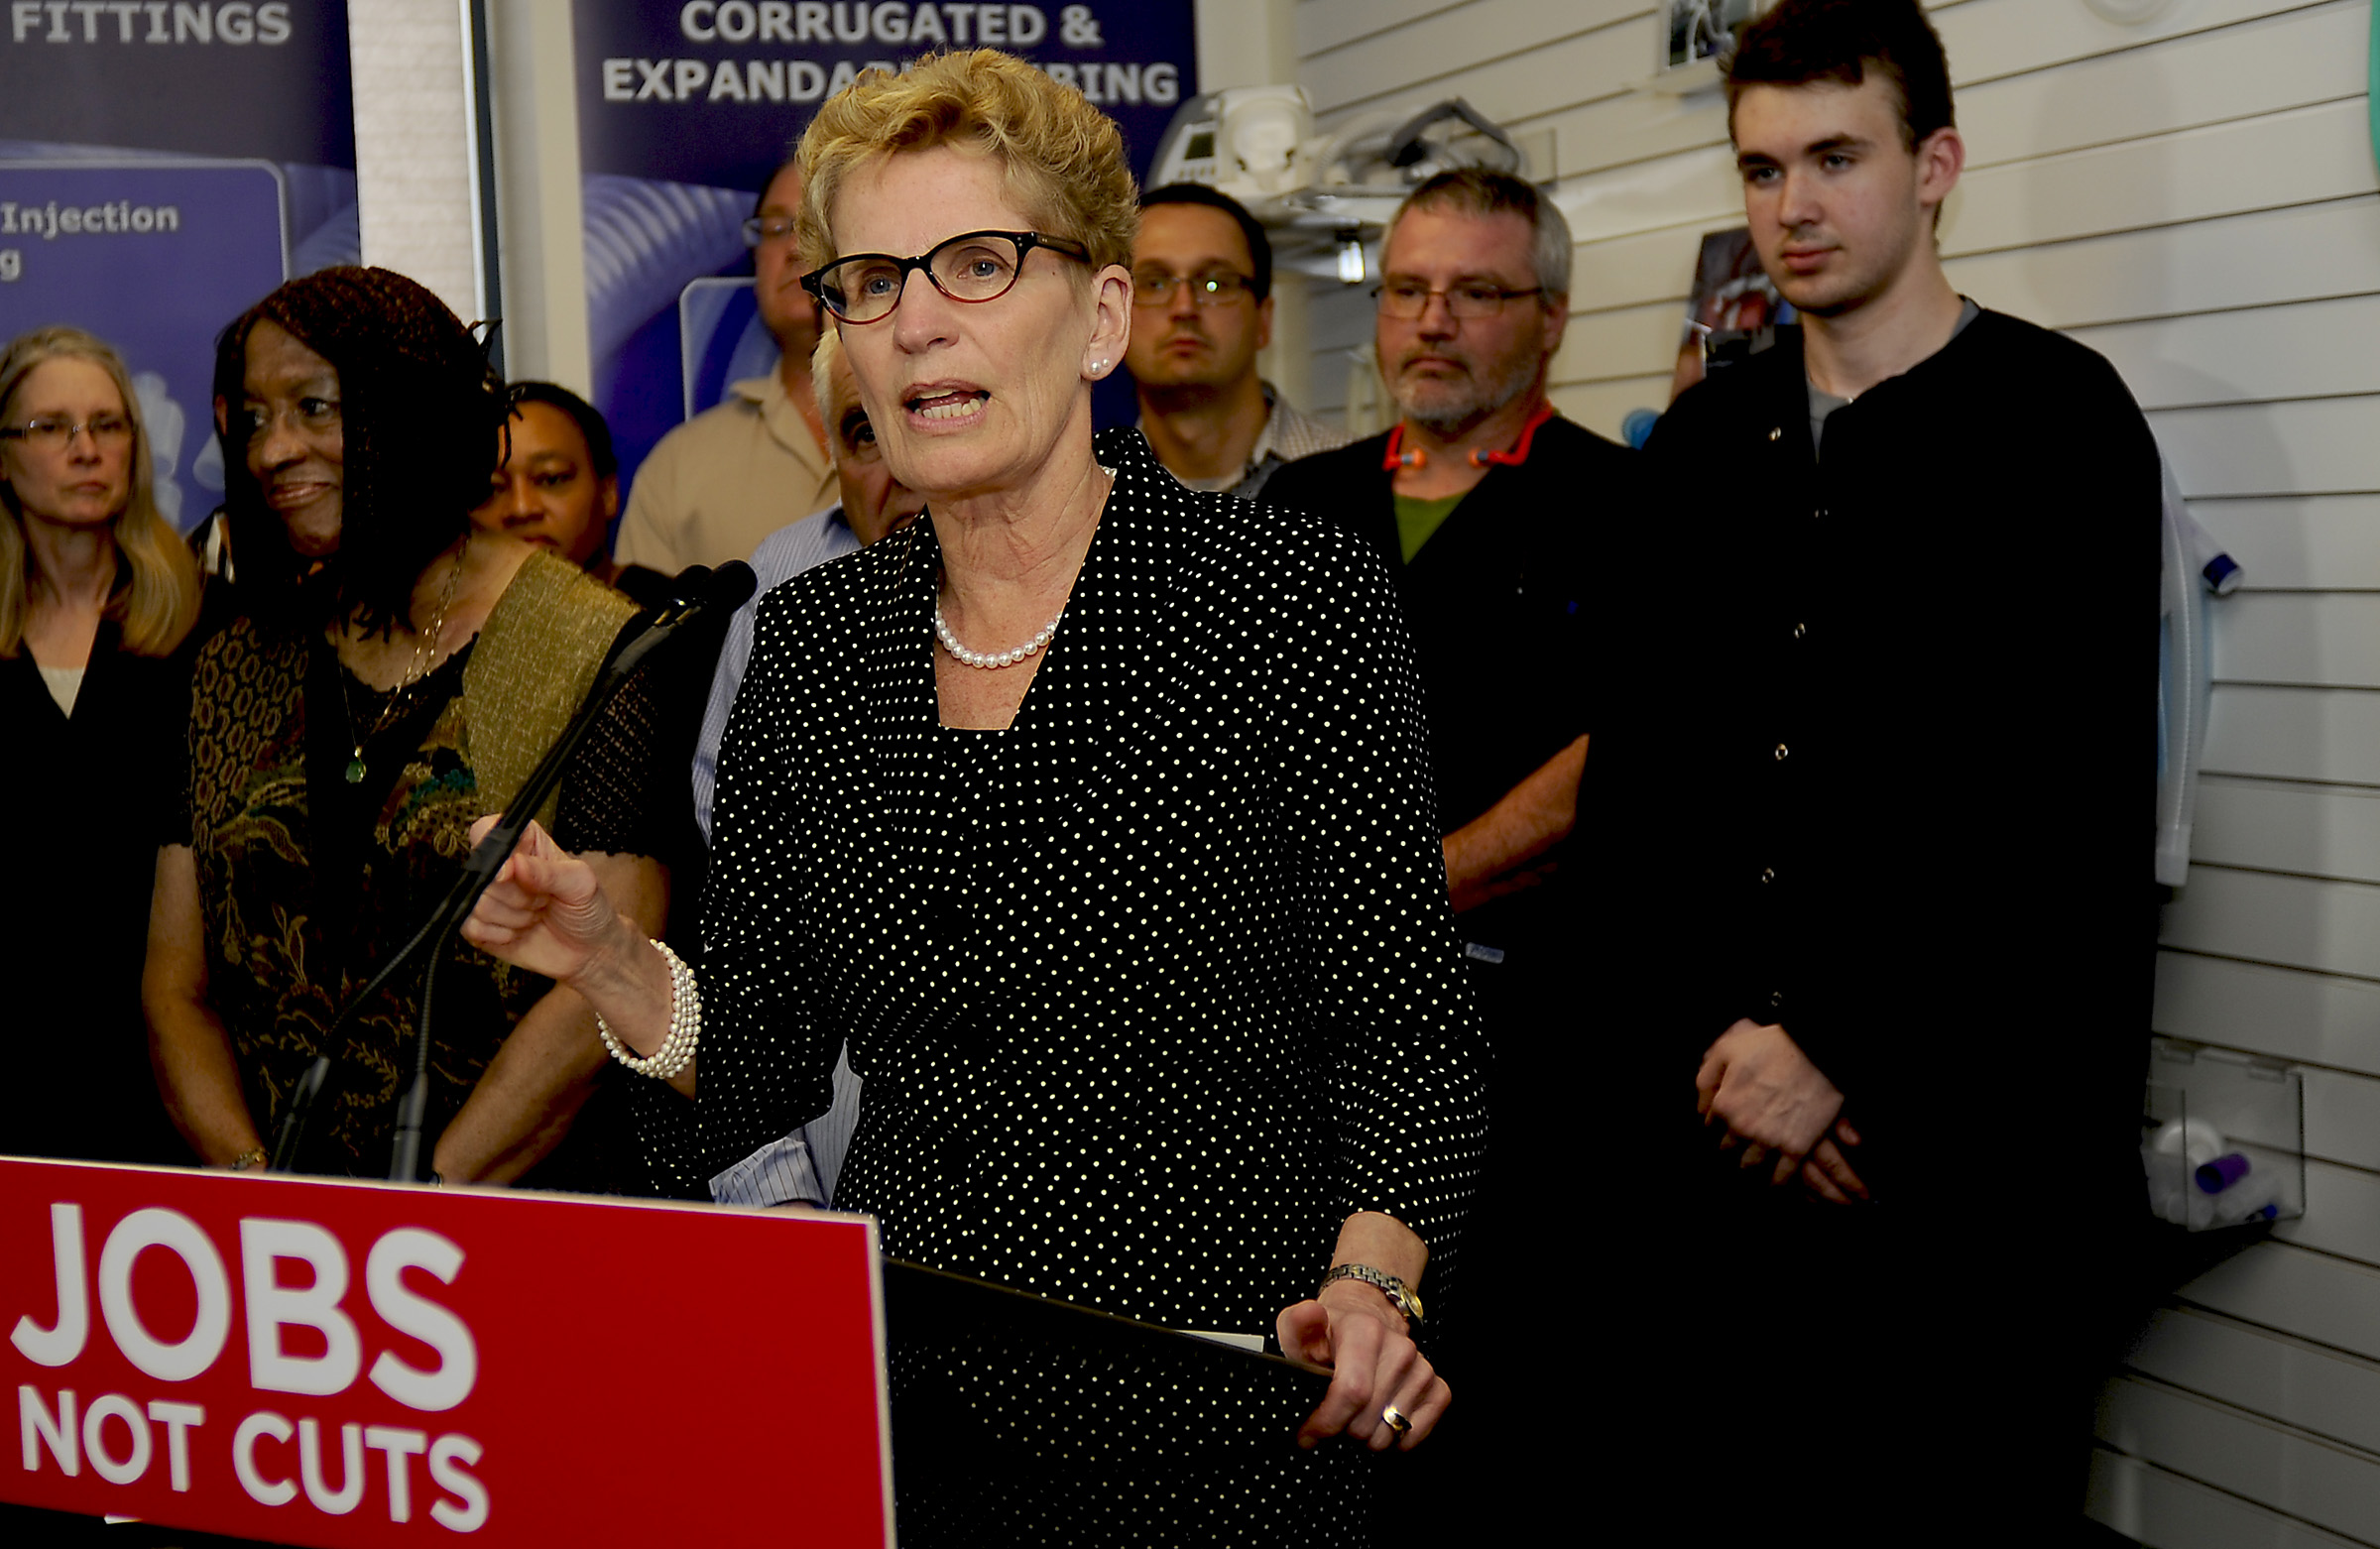 Ontario to increase minimum wage to $15 an hour in 2019